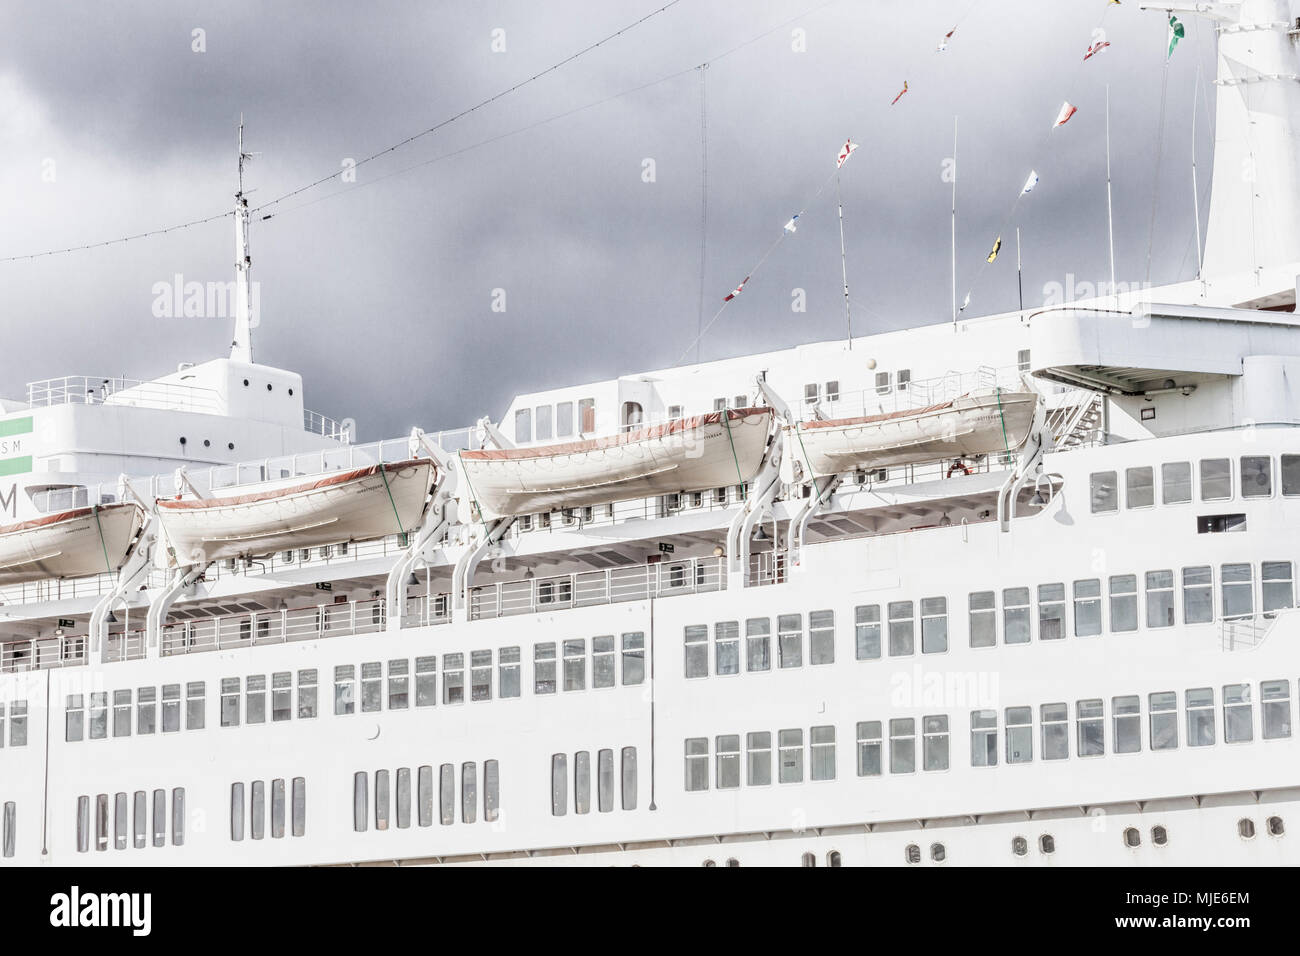 Old passenger ship in the Port of Rotterdam - Stock Image